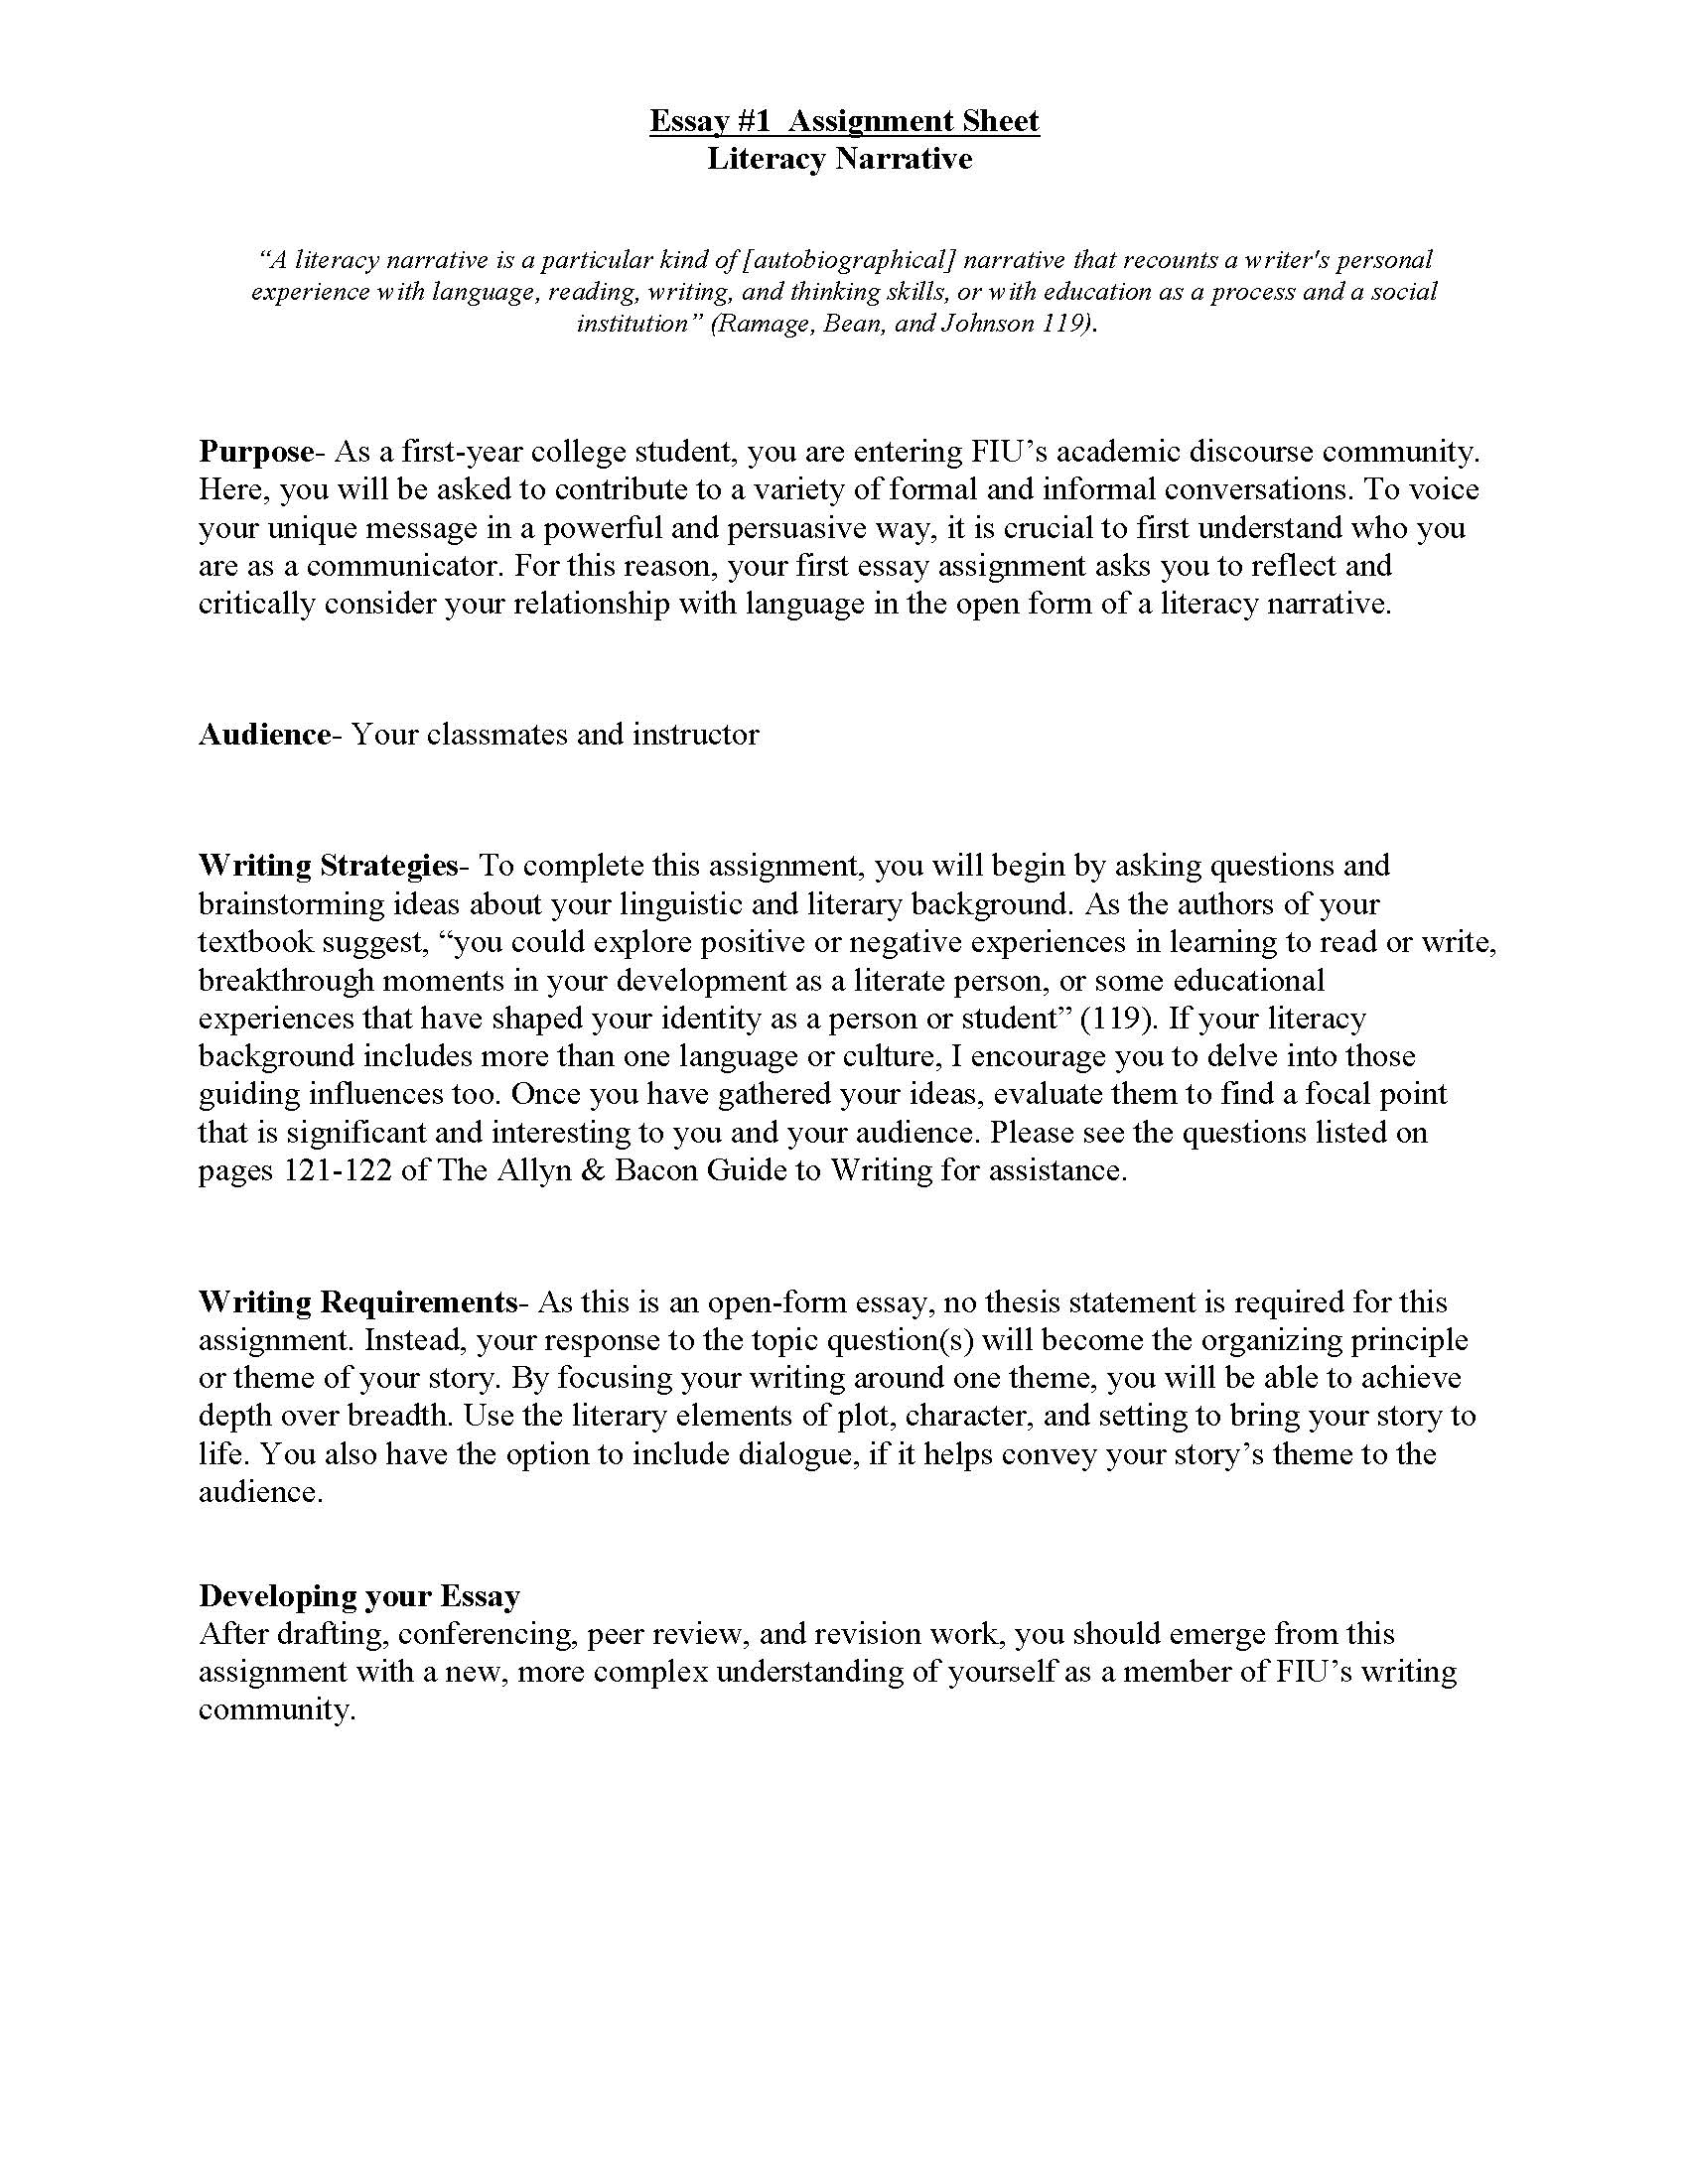 009 Literacy Narrative Unit Assignment Spring 2012 Page 1 Research Paper List Of Topics For In Sensational Education Full